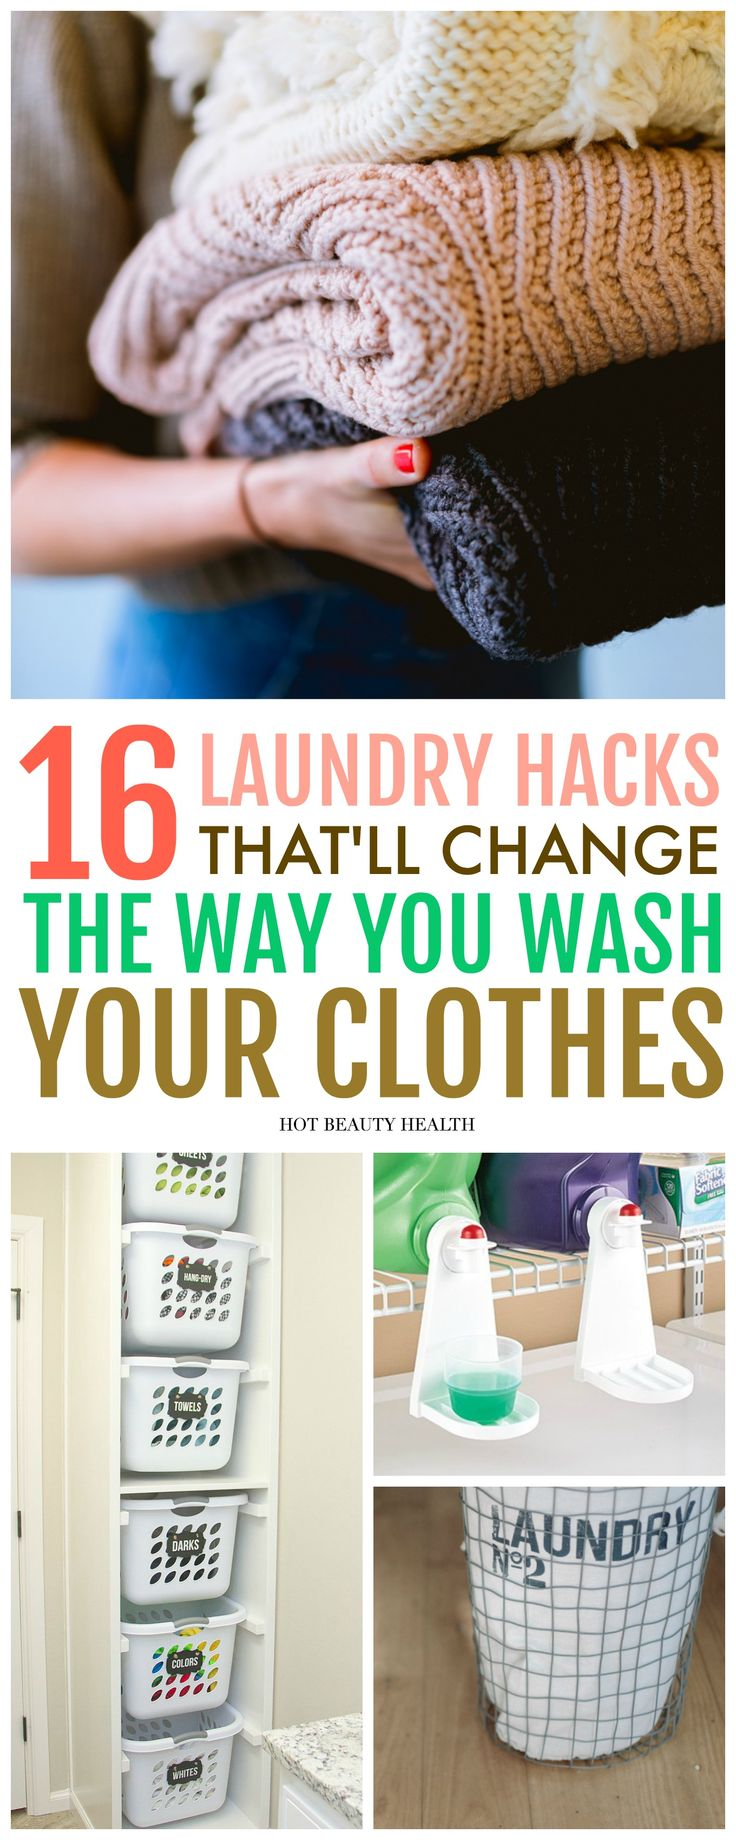 16 DIY Laundry Hacks That Will Change The Way You Wash Clothes. Great list for busy moms to use during spring cleaning! Learn how to remove common stains, smell, and more!